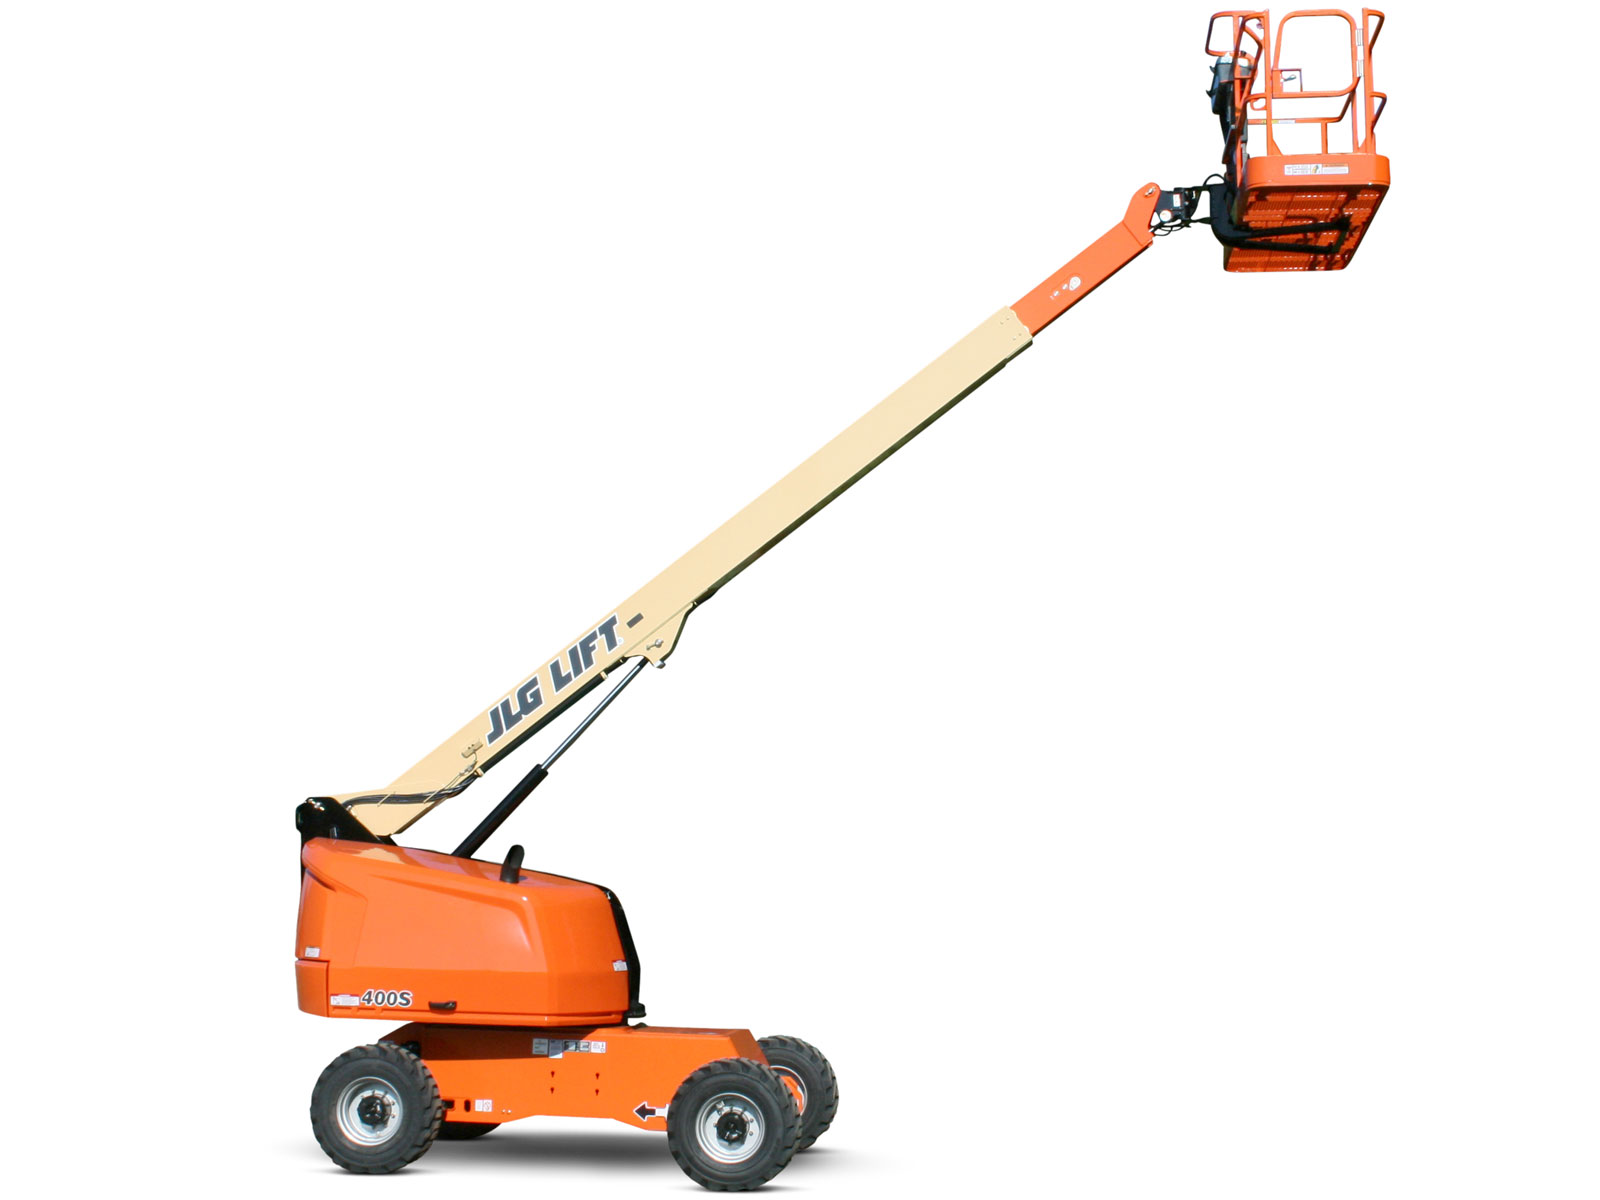 Rent a 40' Straight Boom Lift